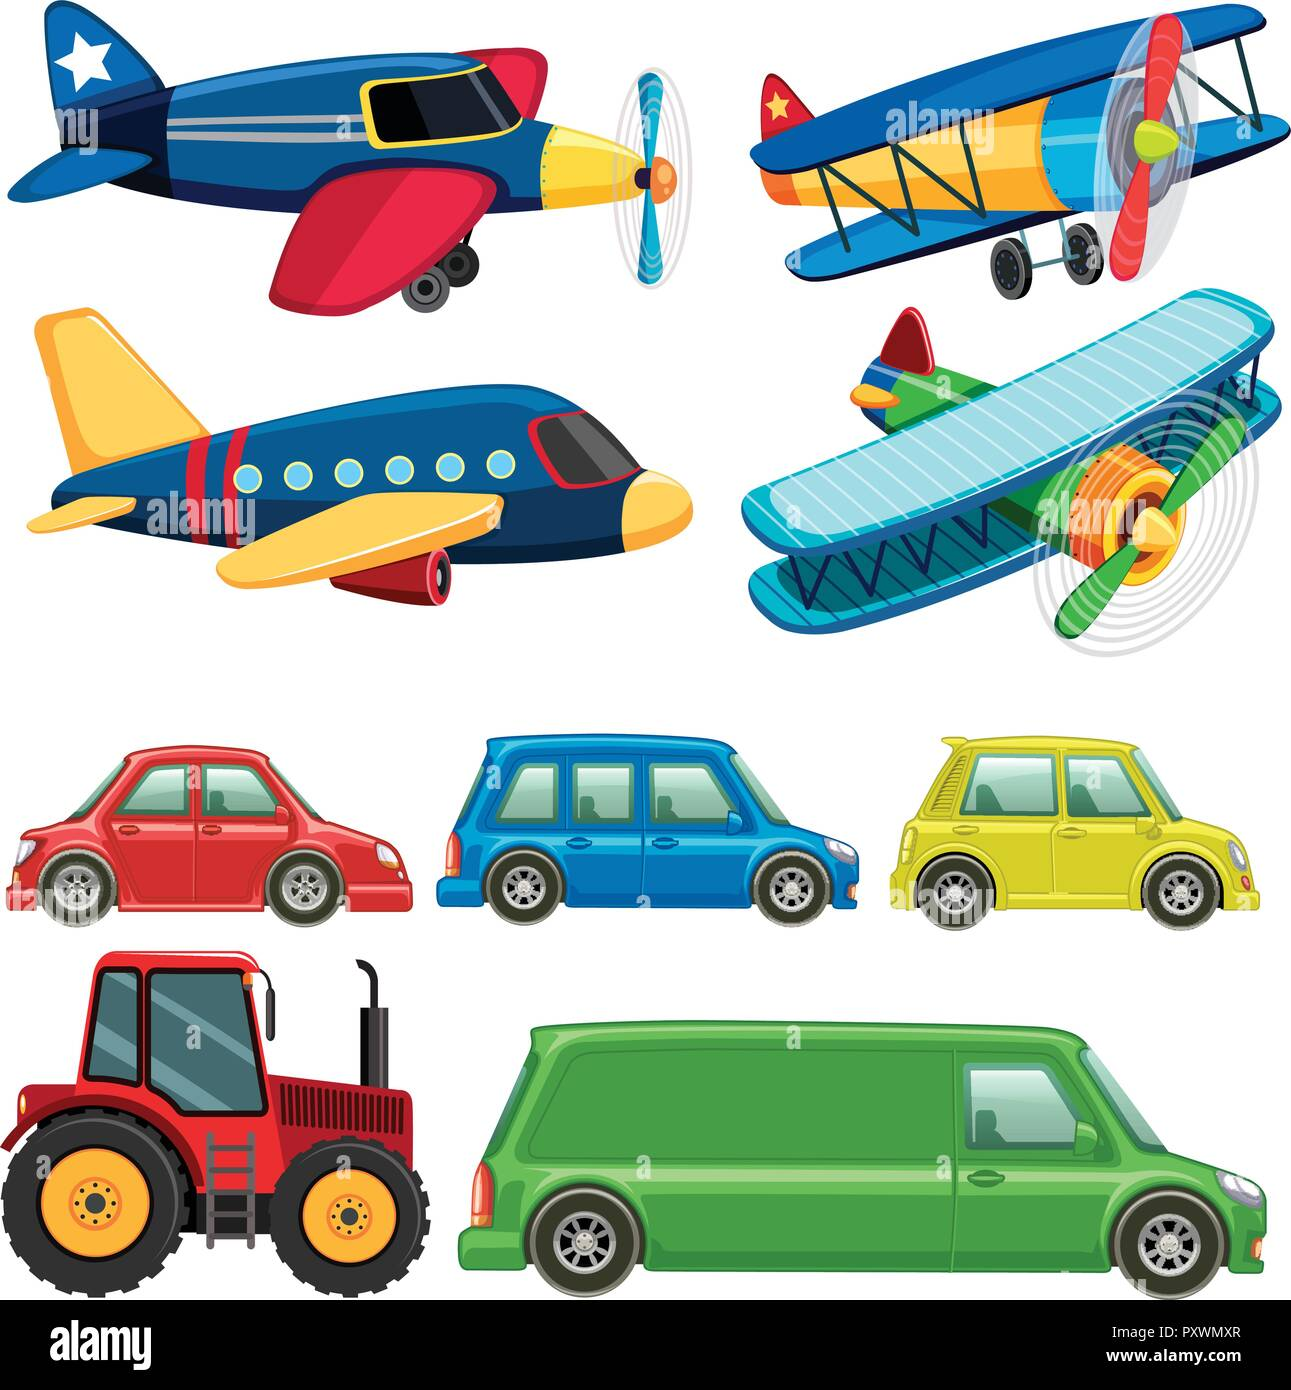 Different Types Of Vehicles On White Background Illustration Stock Vector Image Art Alamy